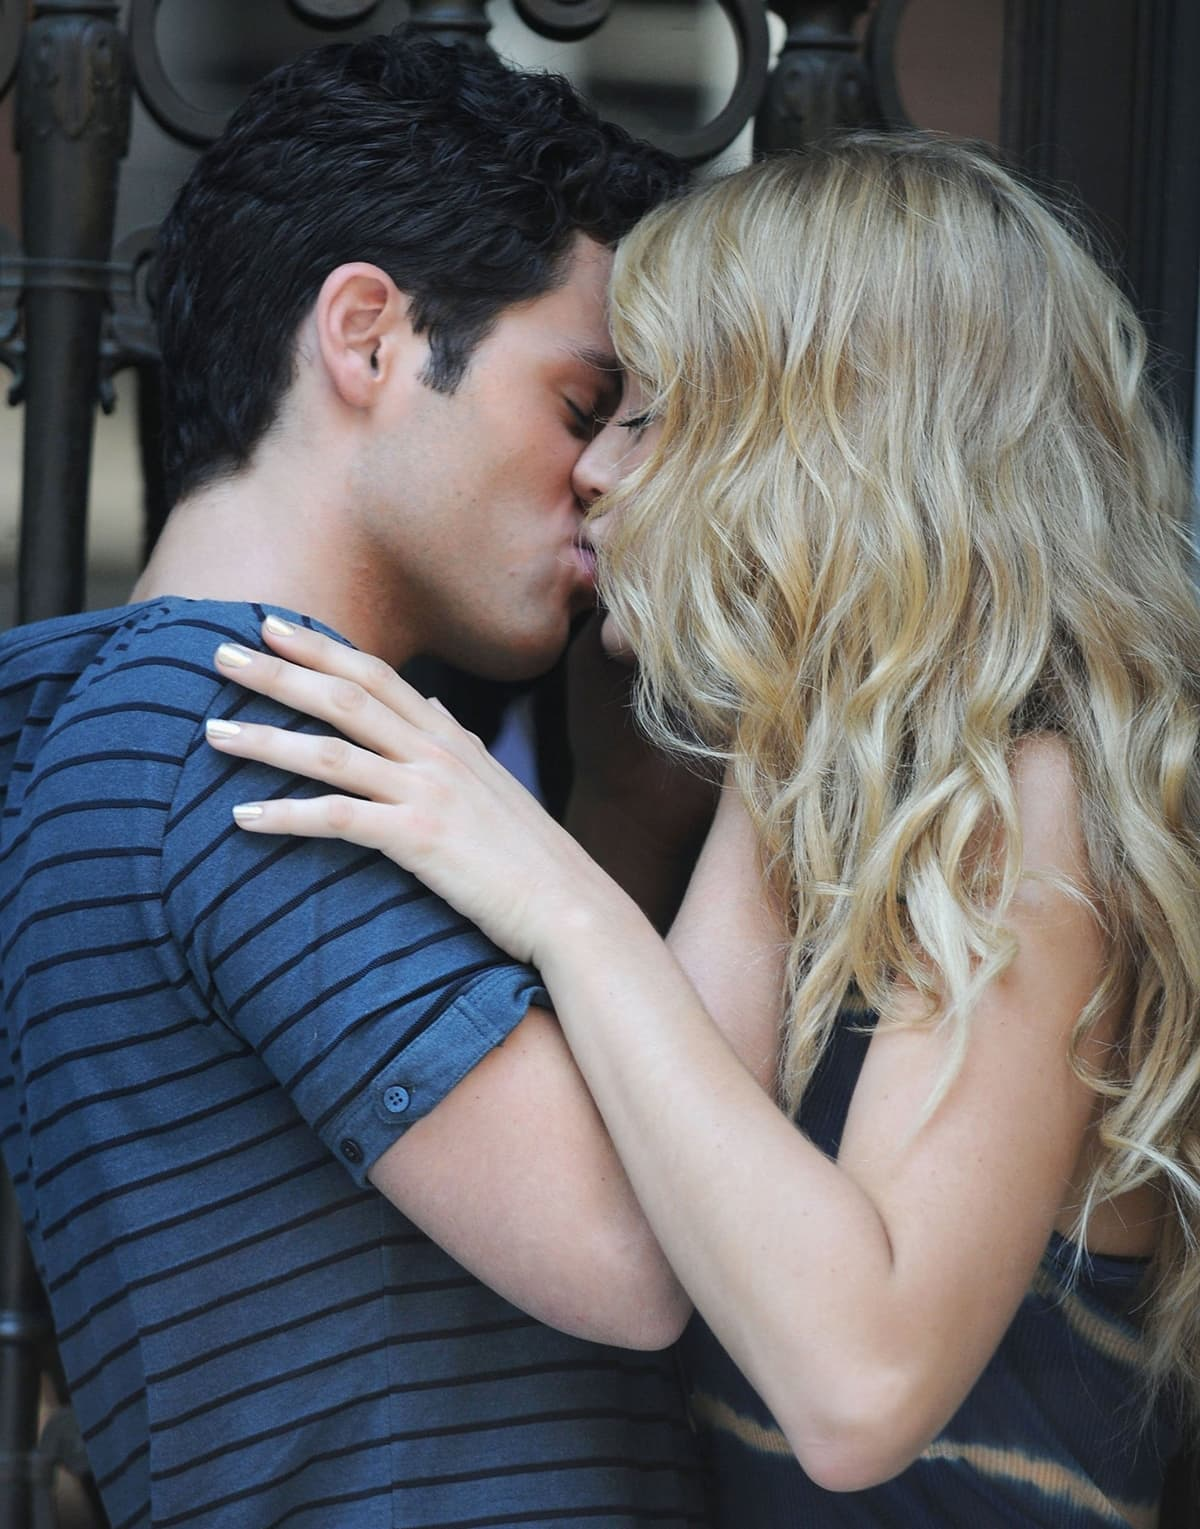 Blake Lively and Penn Badgley kissing on the film set for the television series Gossip Girl